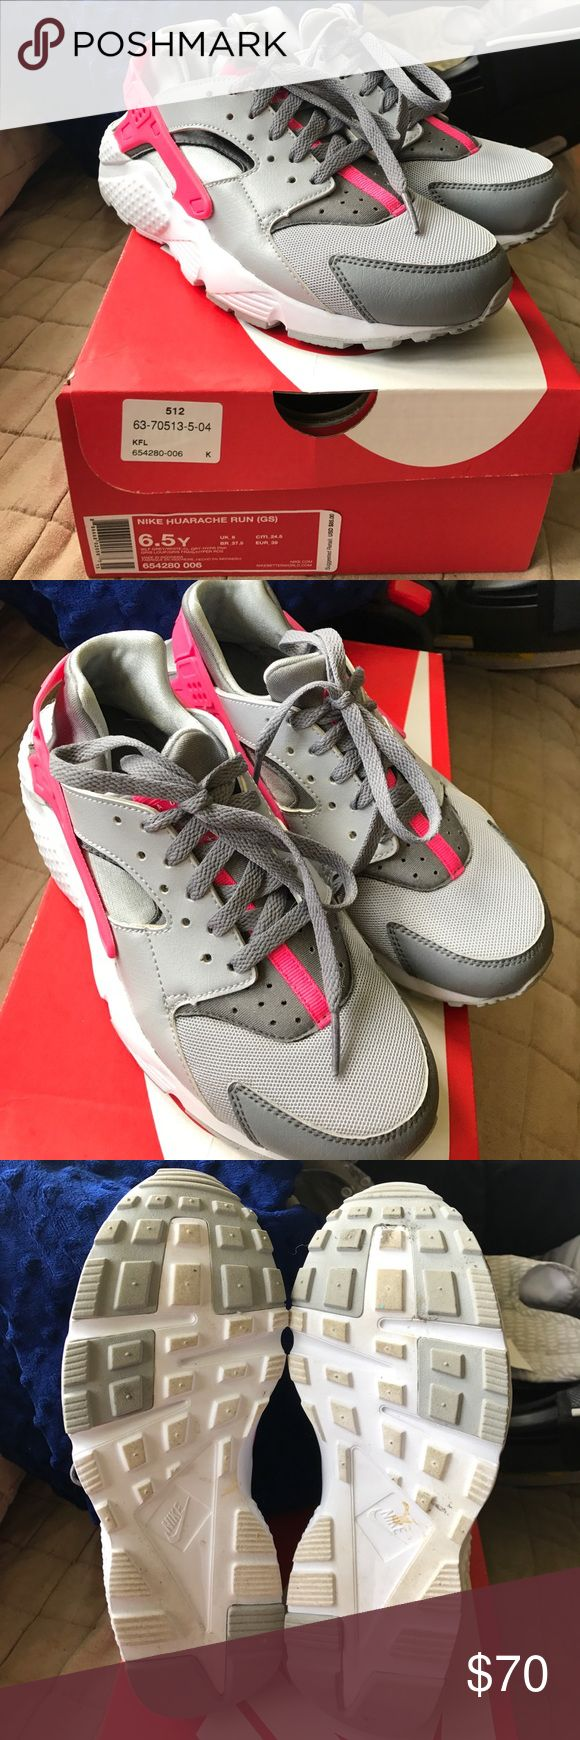 Nike Huaraches Gray, white, and pink Huaraches. Kids 6.5 but they do run small. I would say they fit a 7 or 7.5 in women's. Worn only twice, in perfect condition. Last photo is showing a marking but the shoe came like that when bought. Nike Shoes Sneakers